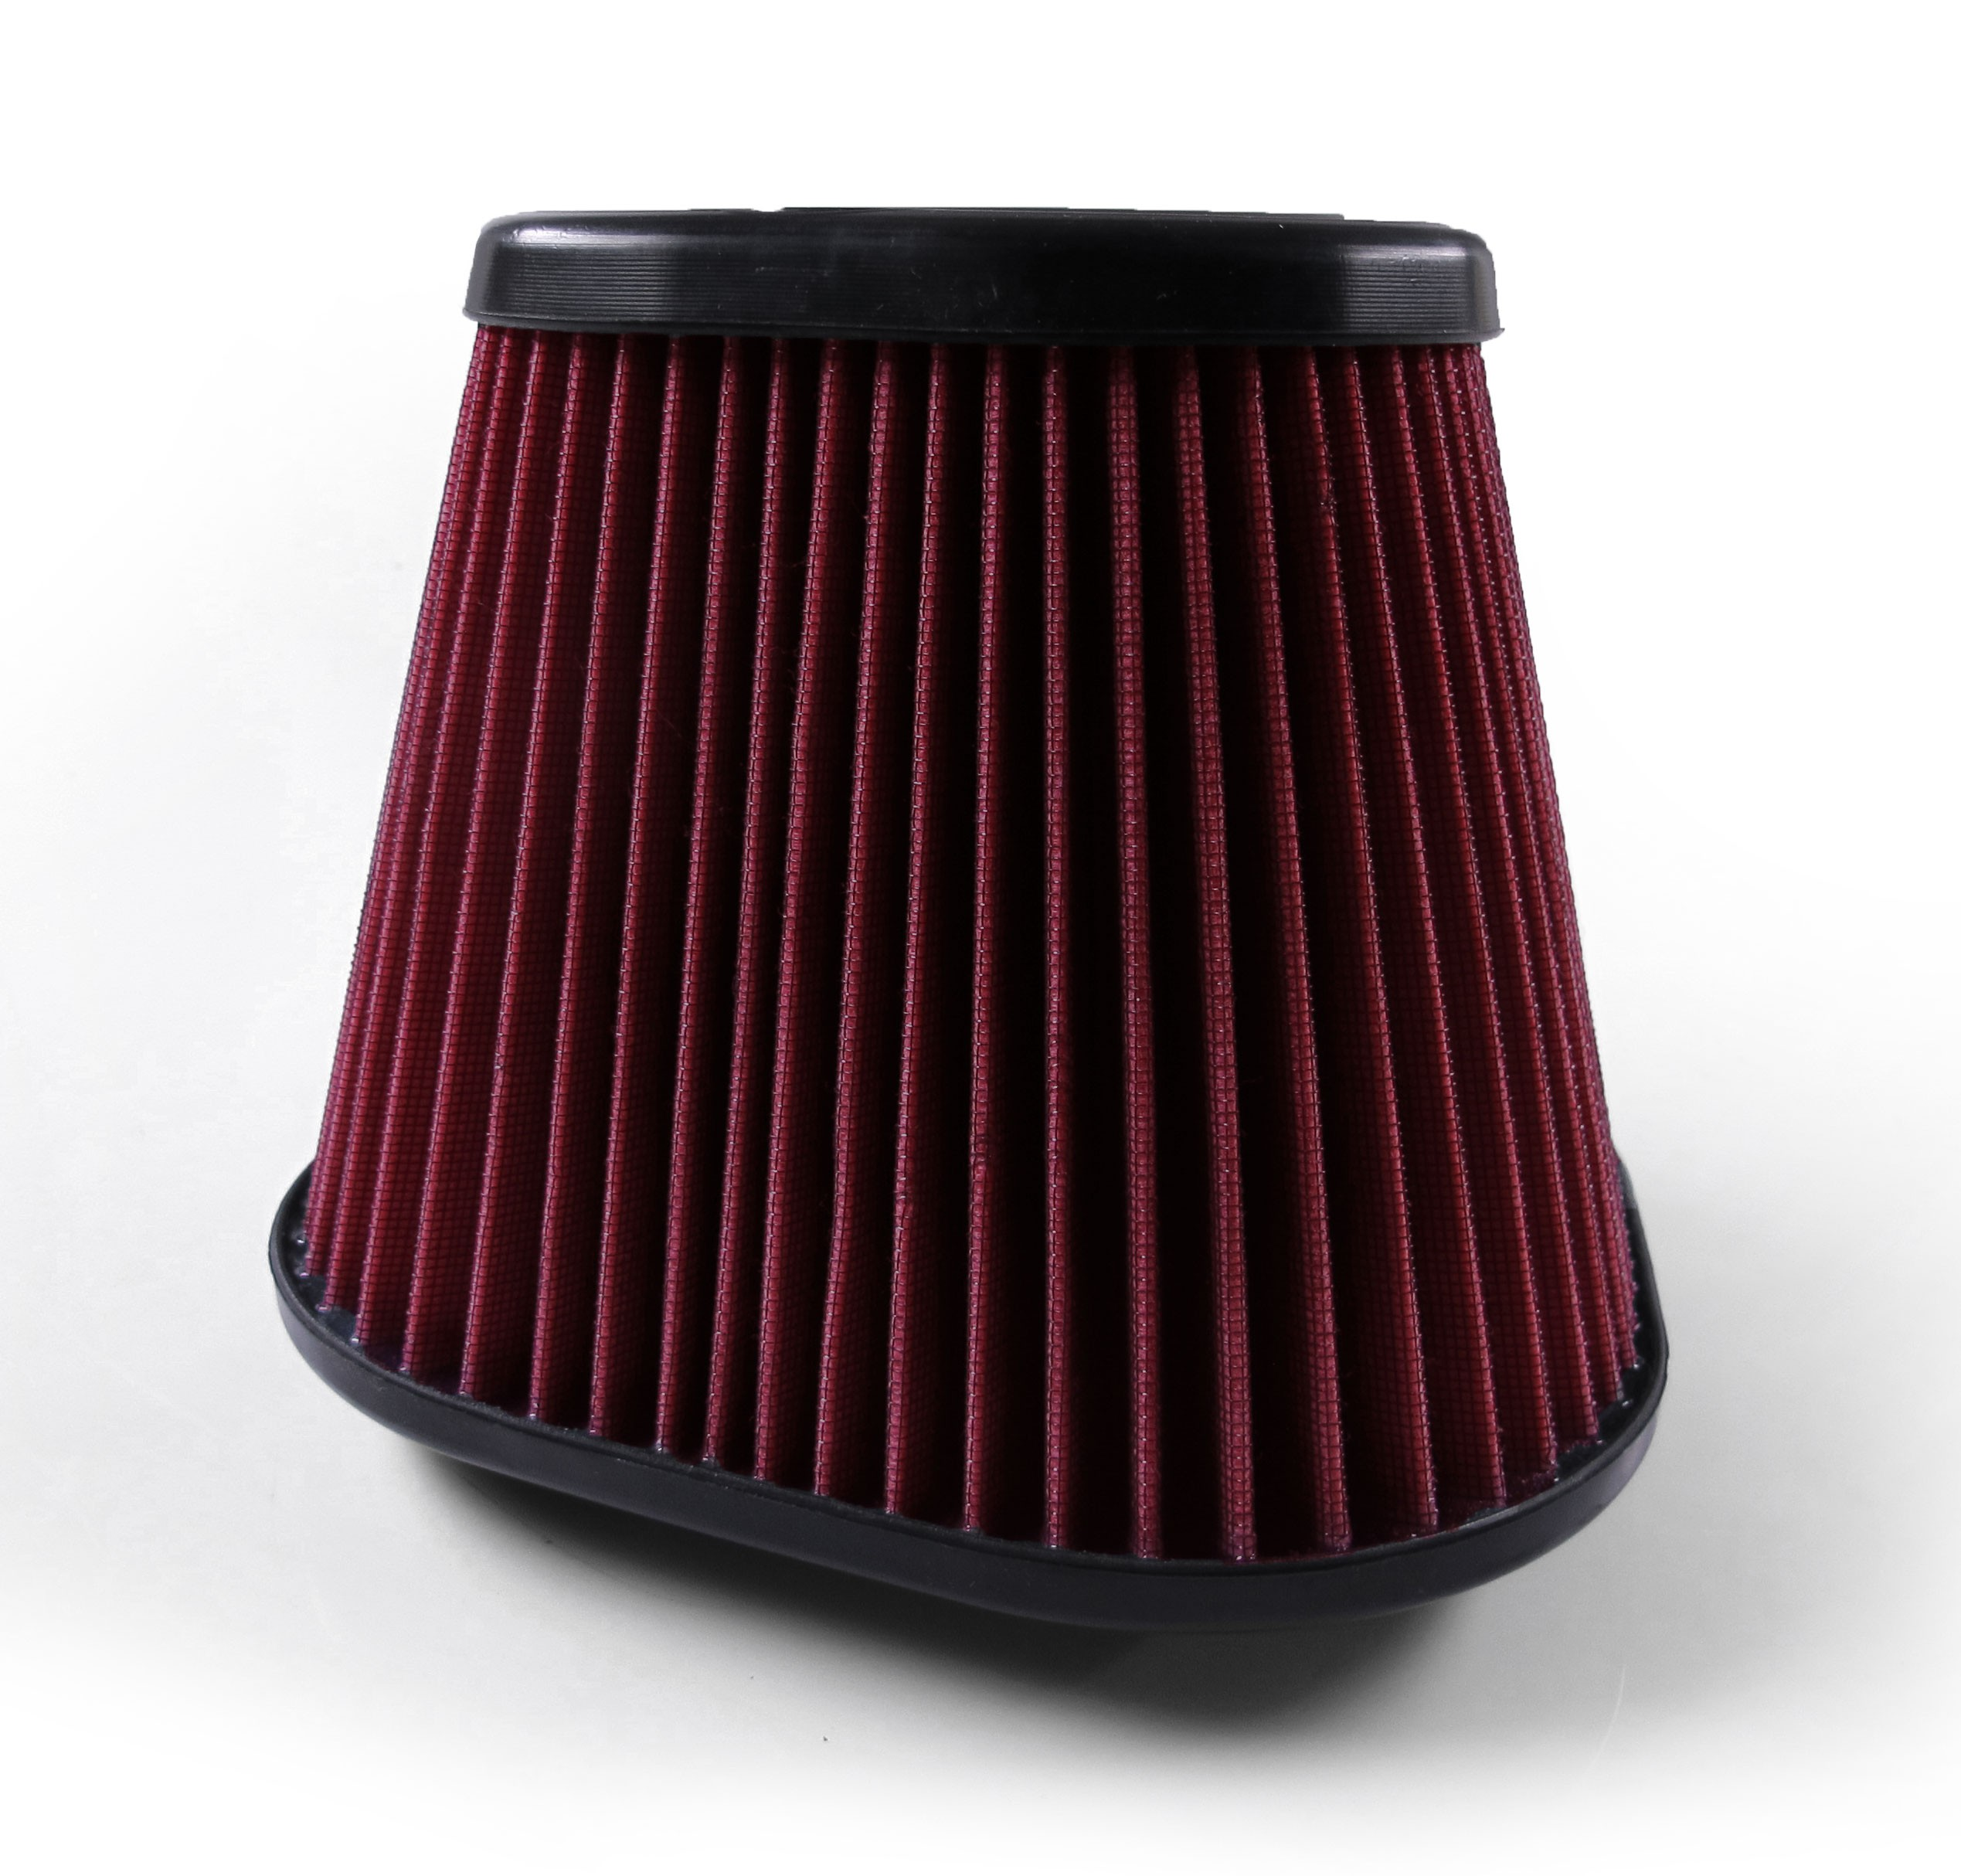 S Amp B Replacement Filter For S Amp B Cold Air Intake Kit